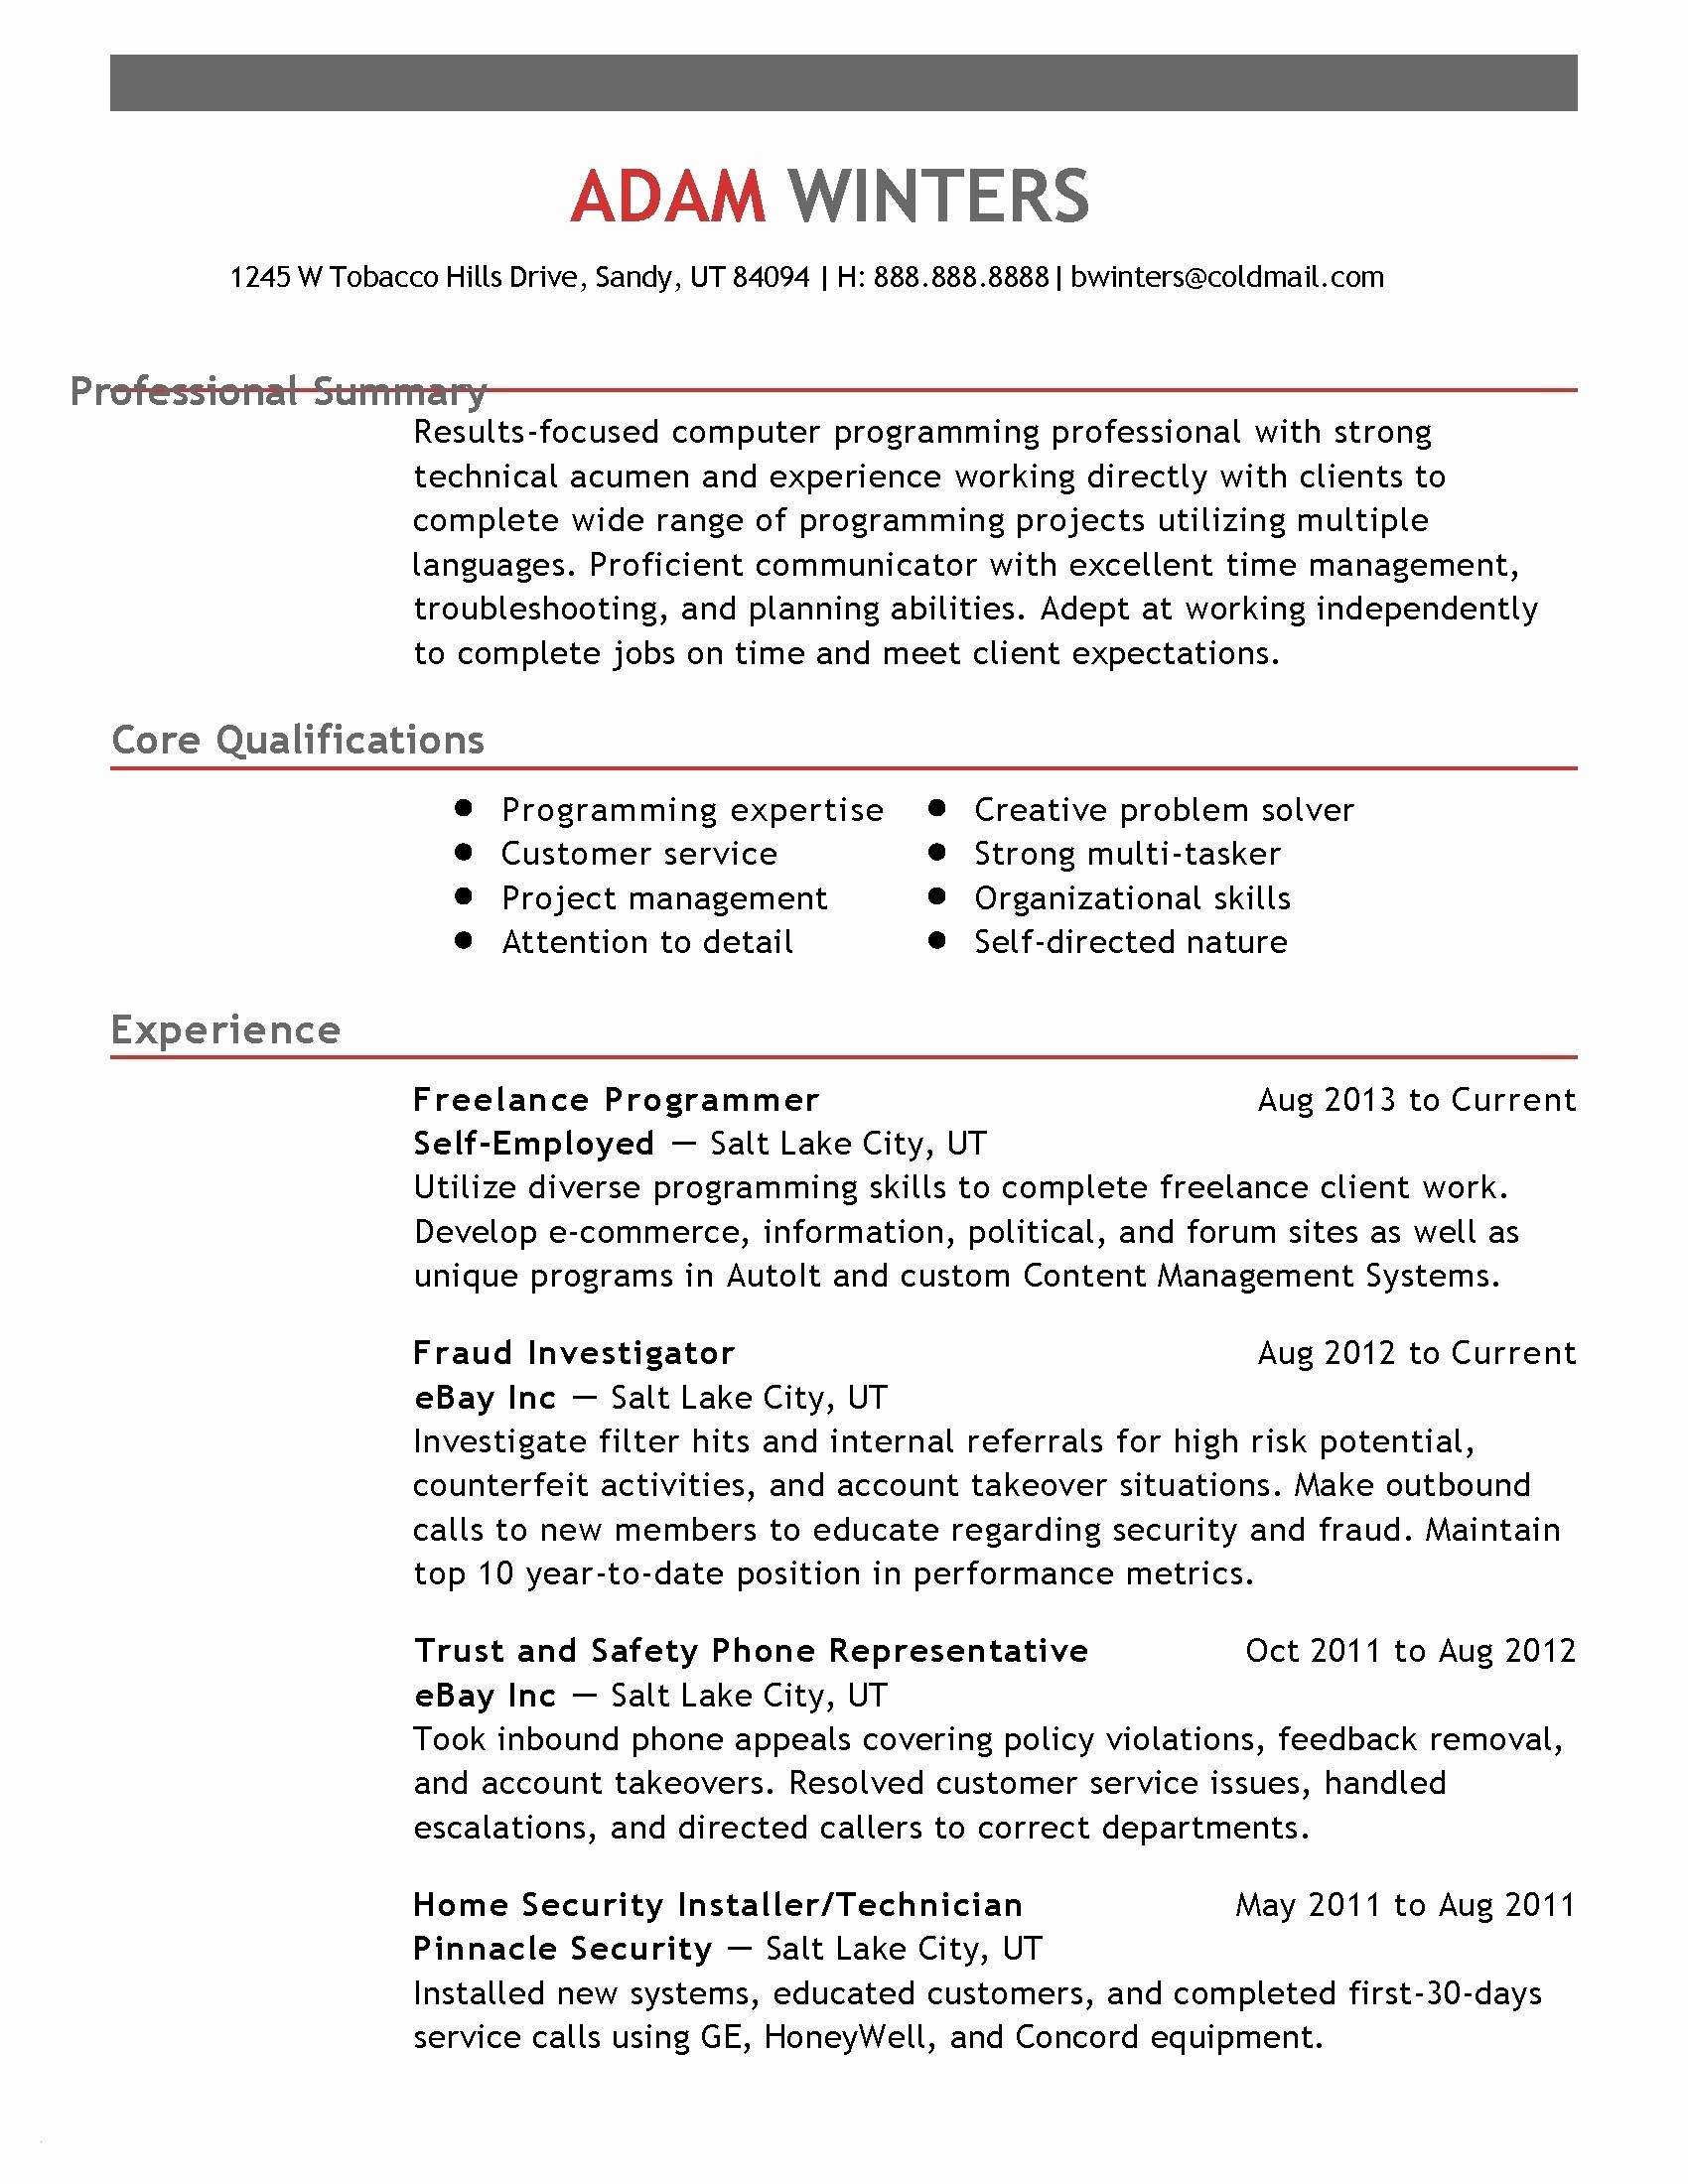 internal resume example example-Awesome Advertising Agency Rfp Template Best Detailed Resume Template How to Do Resume Best 7-h